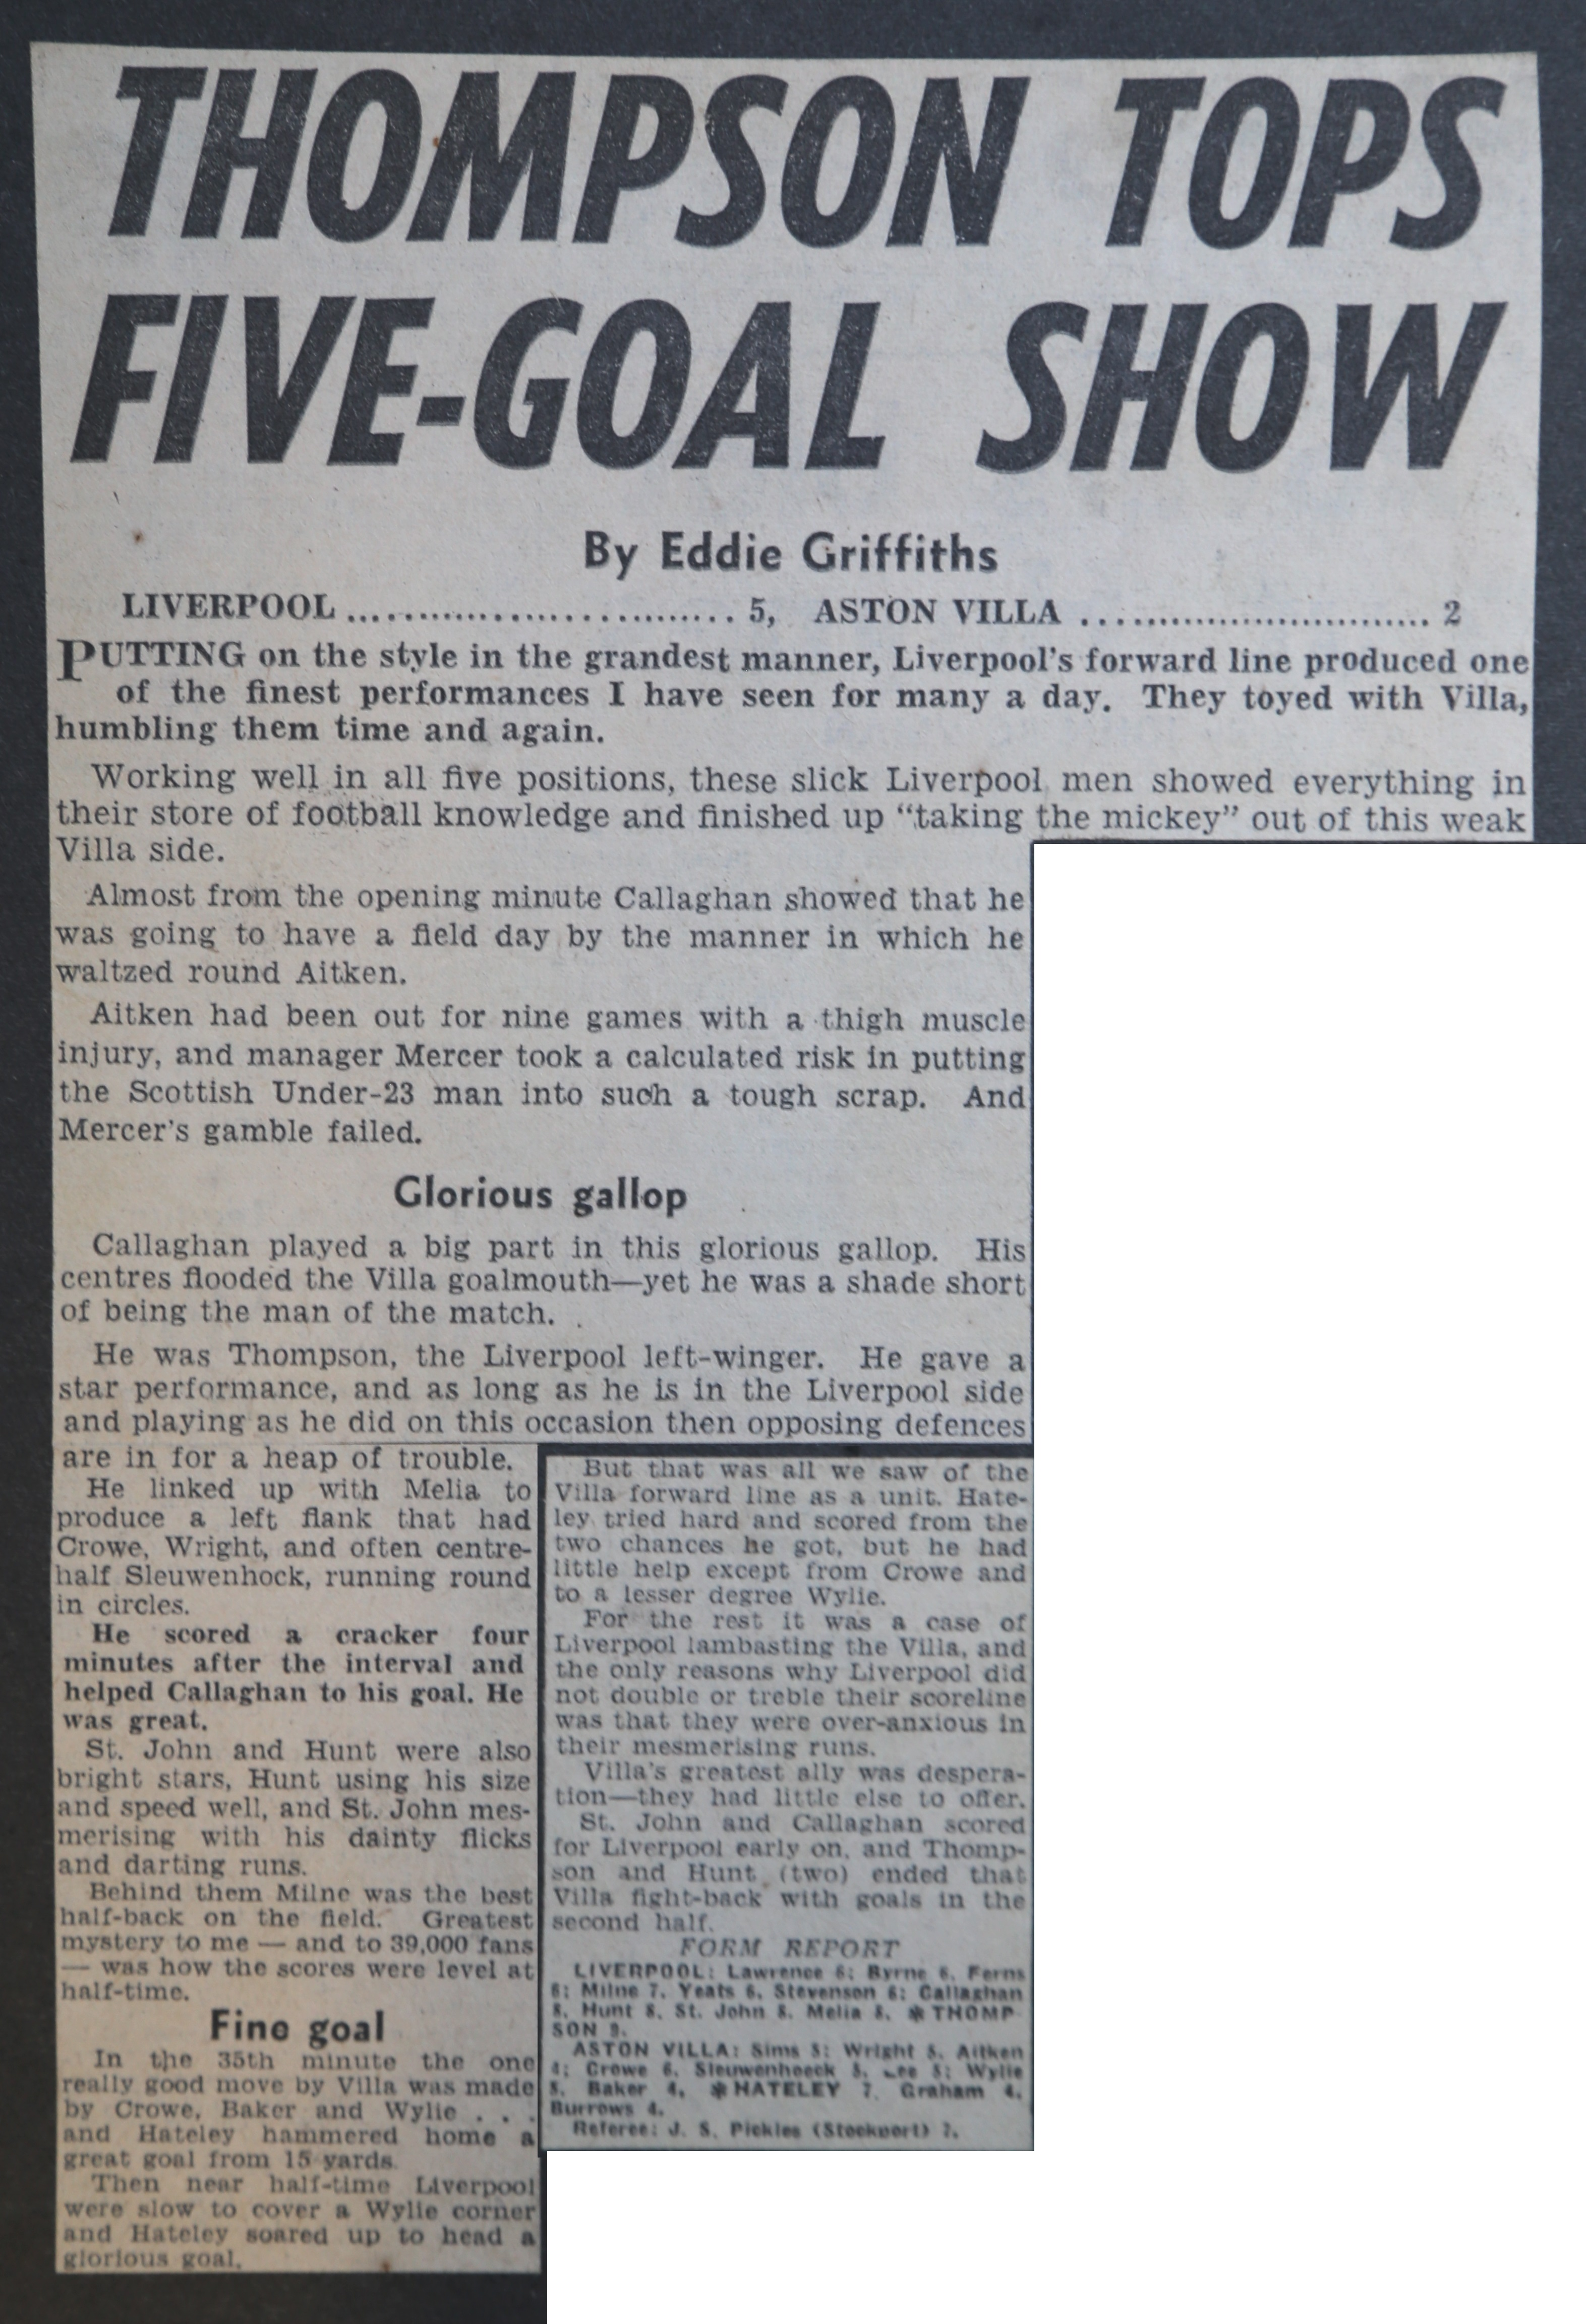 Thompson tops five-goal show - 5 October 1963